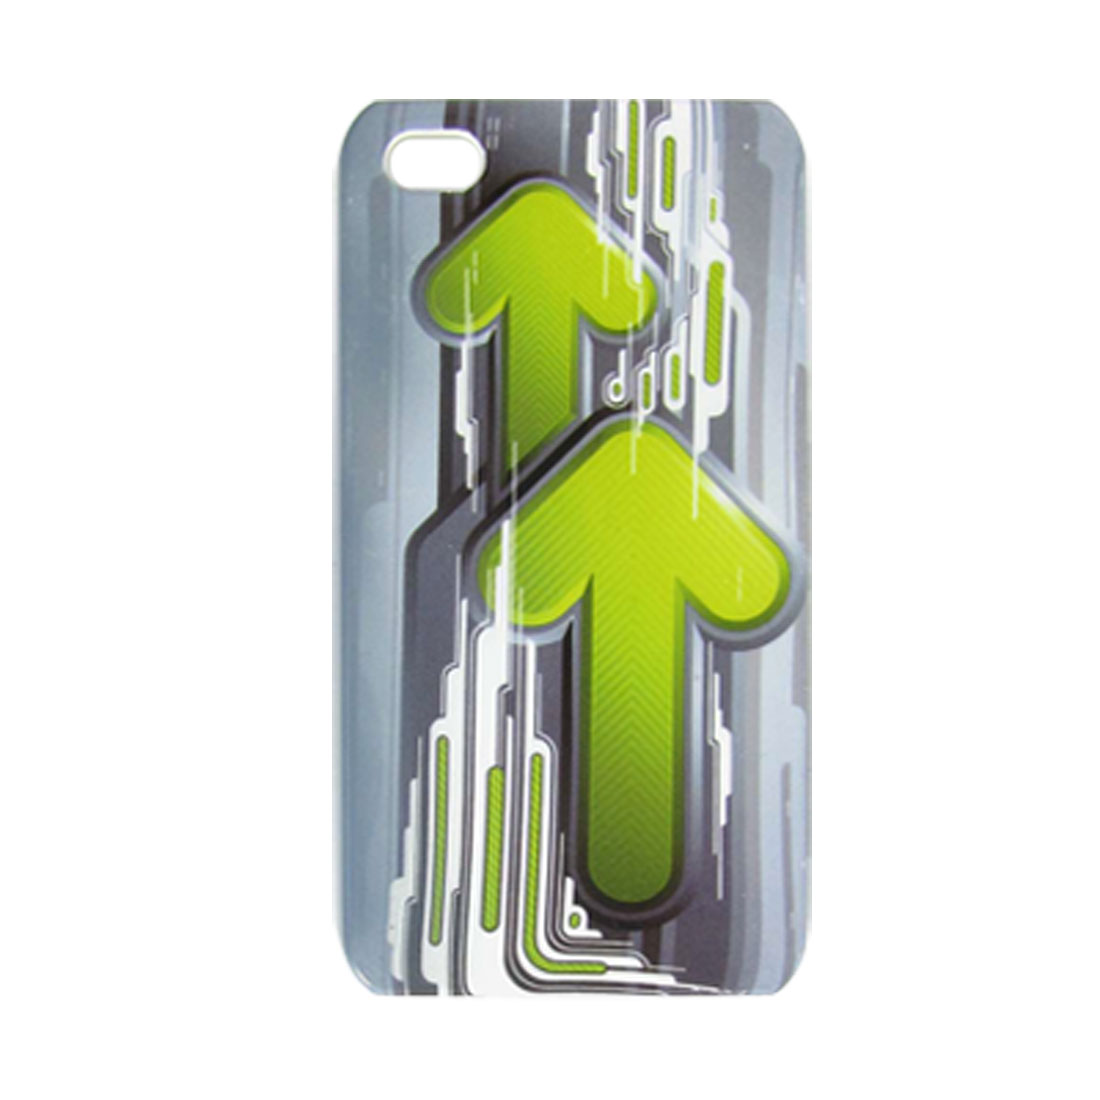 Green Double Arrow Smooth Hard Plastic Protector for iPhone 4 4G